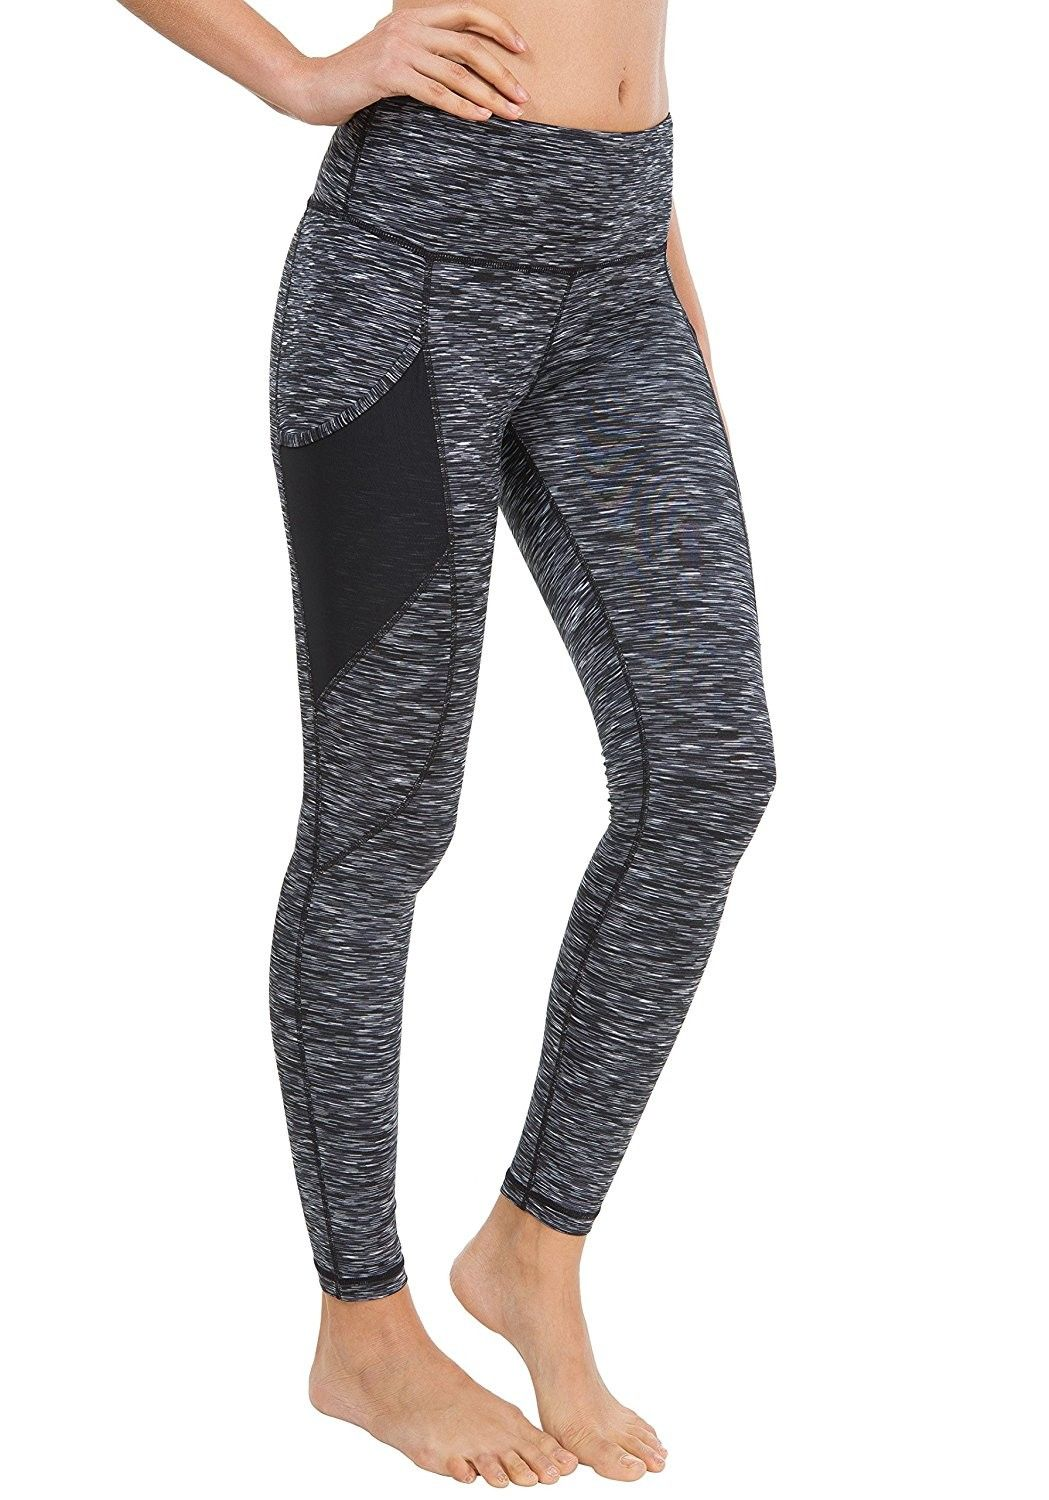 51fe1d9116f30 Women's Clothing, Active, Active Pants, Leggings Running Pockets - Black  Space Dye Side Pockets - CY189KOT3KG #Clothing #fashion #Active #style  #Sexy # ...